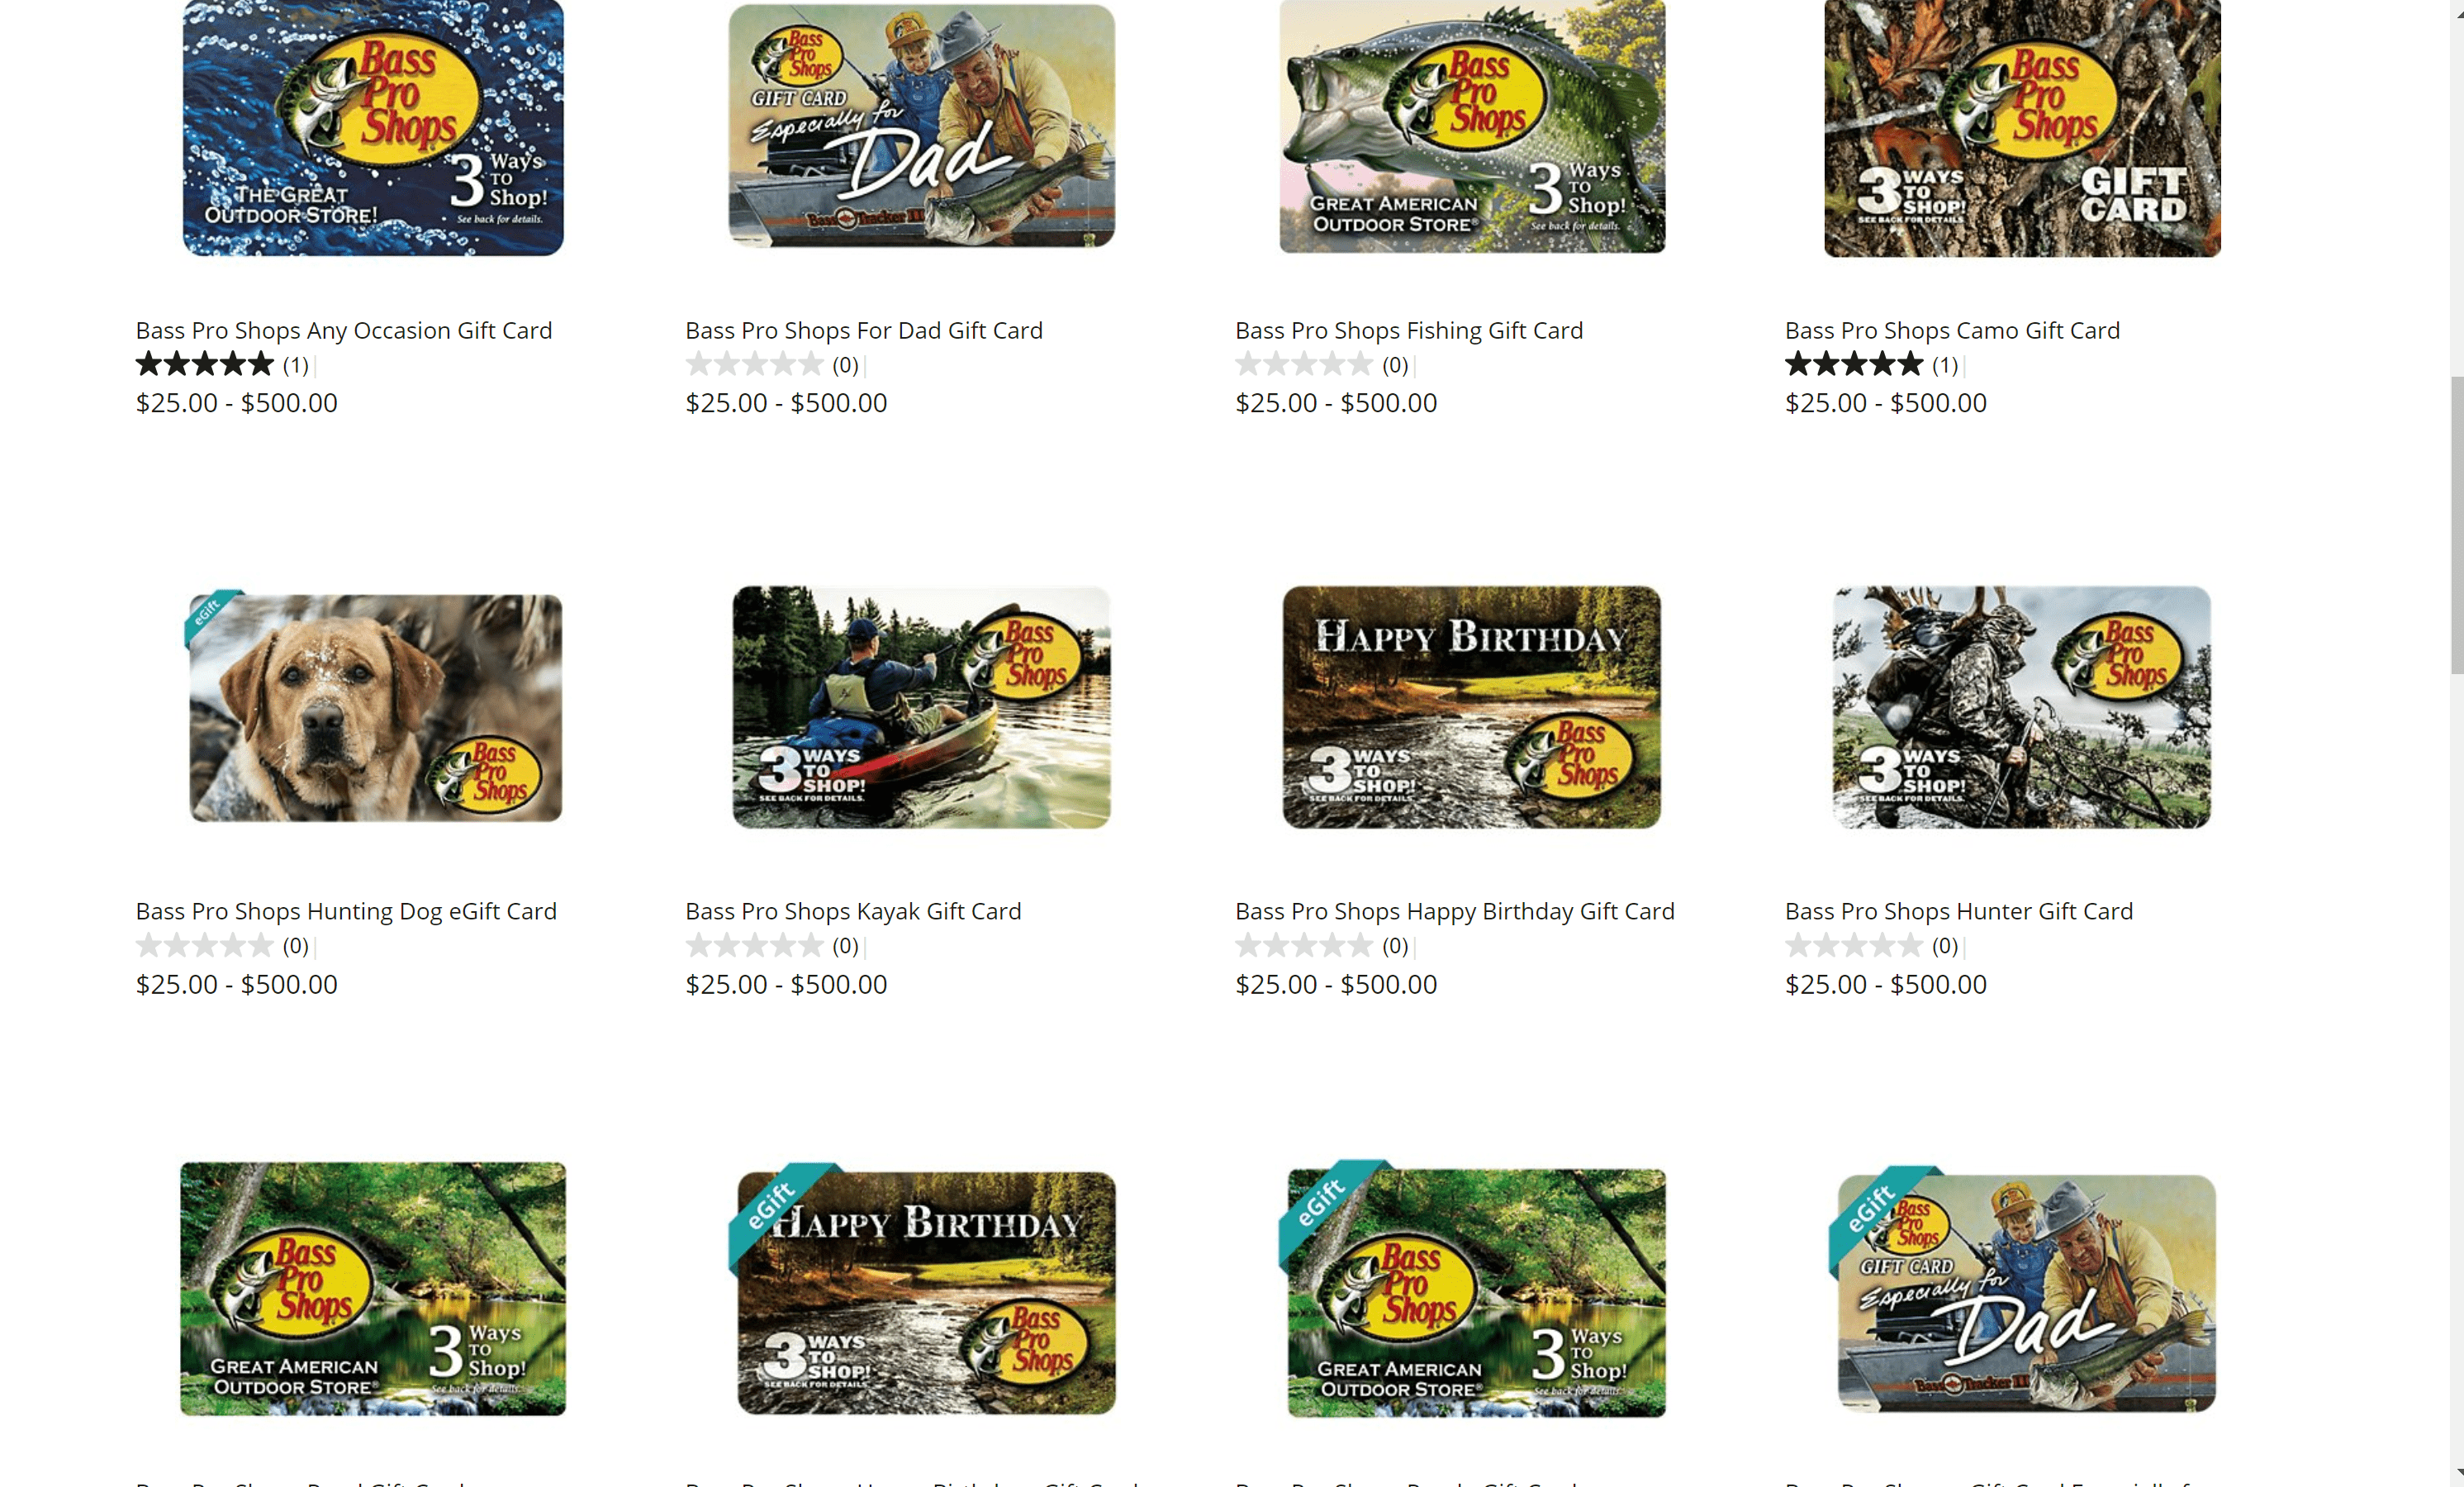 bass Pro Shops products for hunting